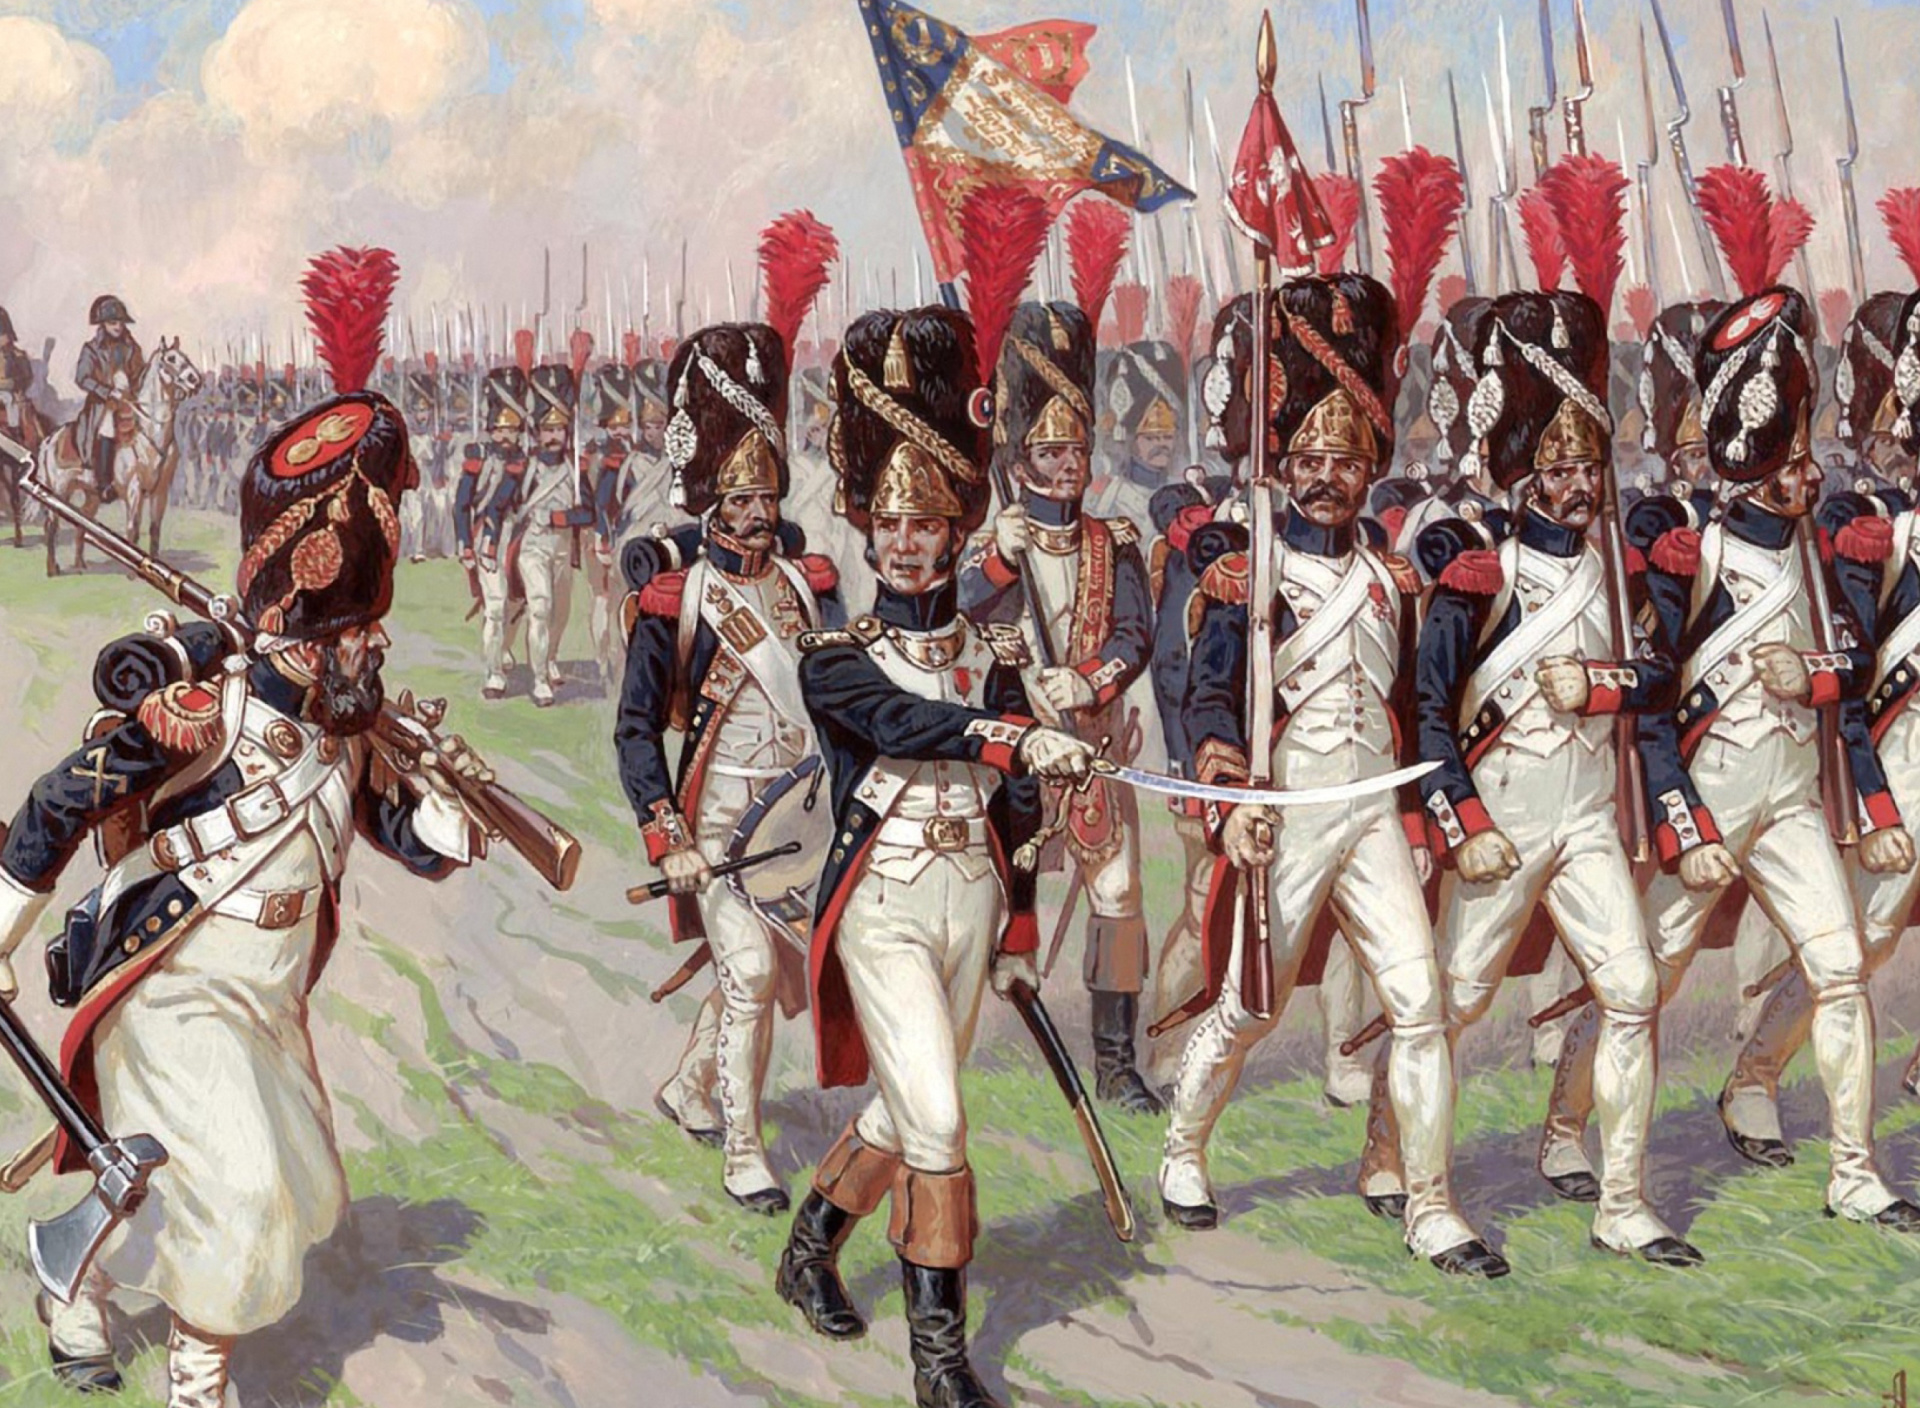 an introduction to the background of the french revolutionary and the napoleonic wars between france The napoleonic wars: a very short introduction of france, and the revolution over the french the french revolution: a very short introduction.